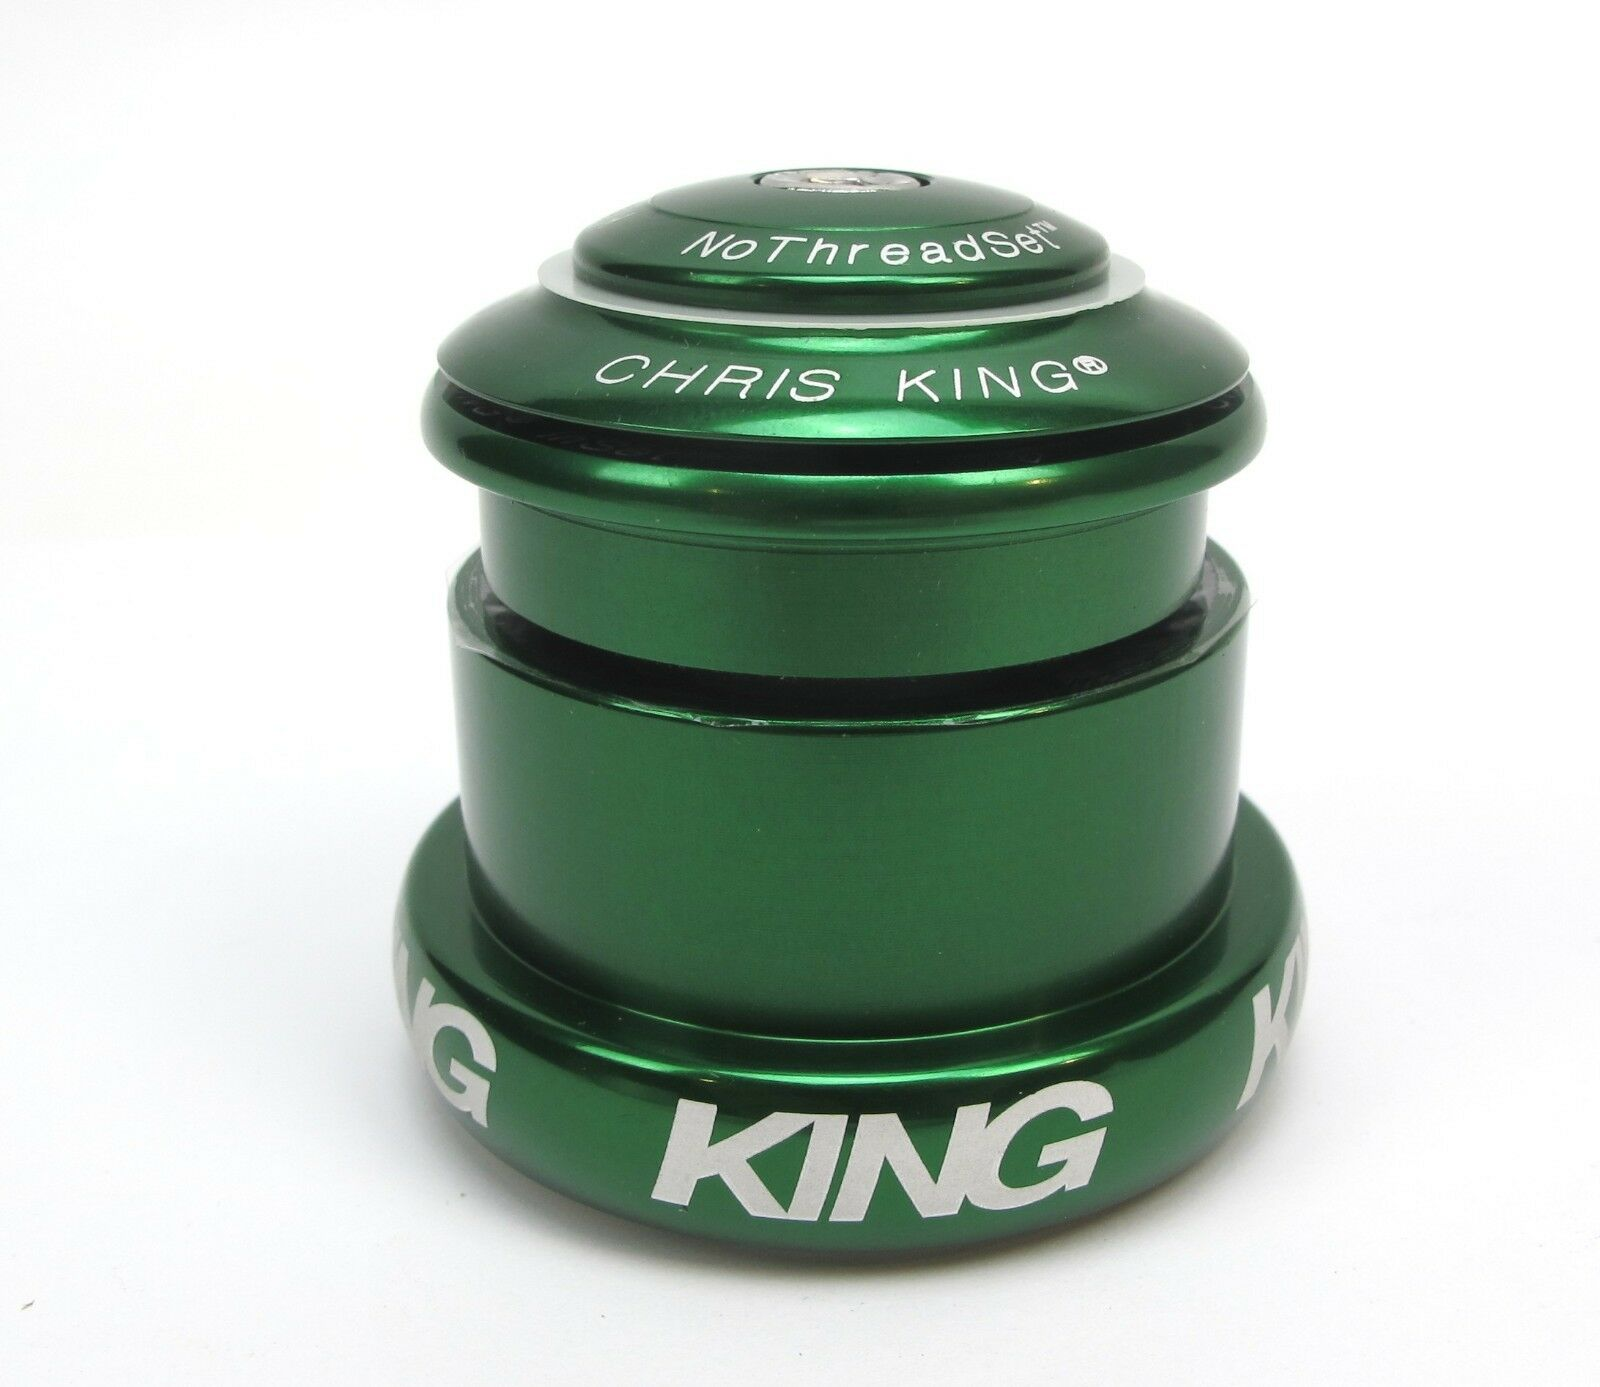 New Chris King Headset Inset I3 ZS44   EC49 Tapered - Green  - 10 Year Warranty